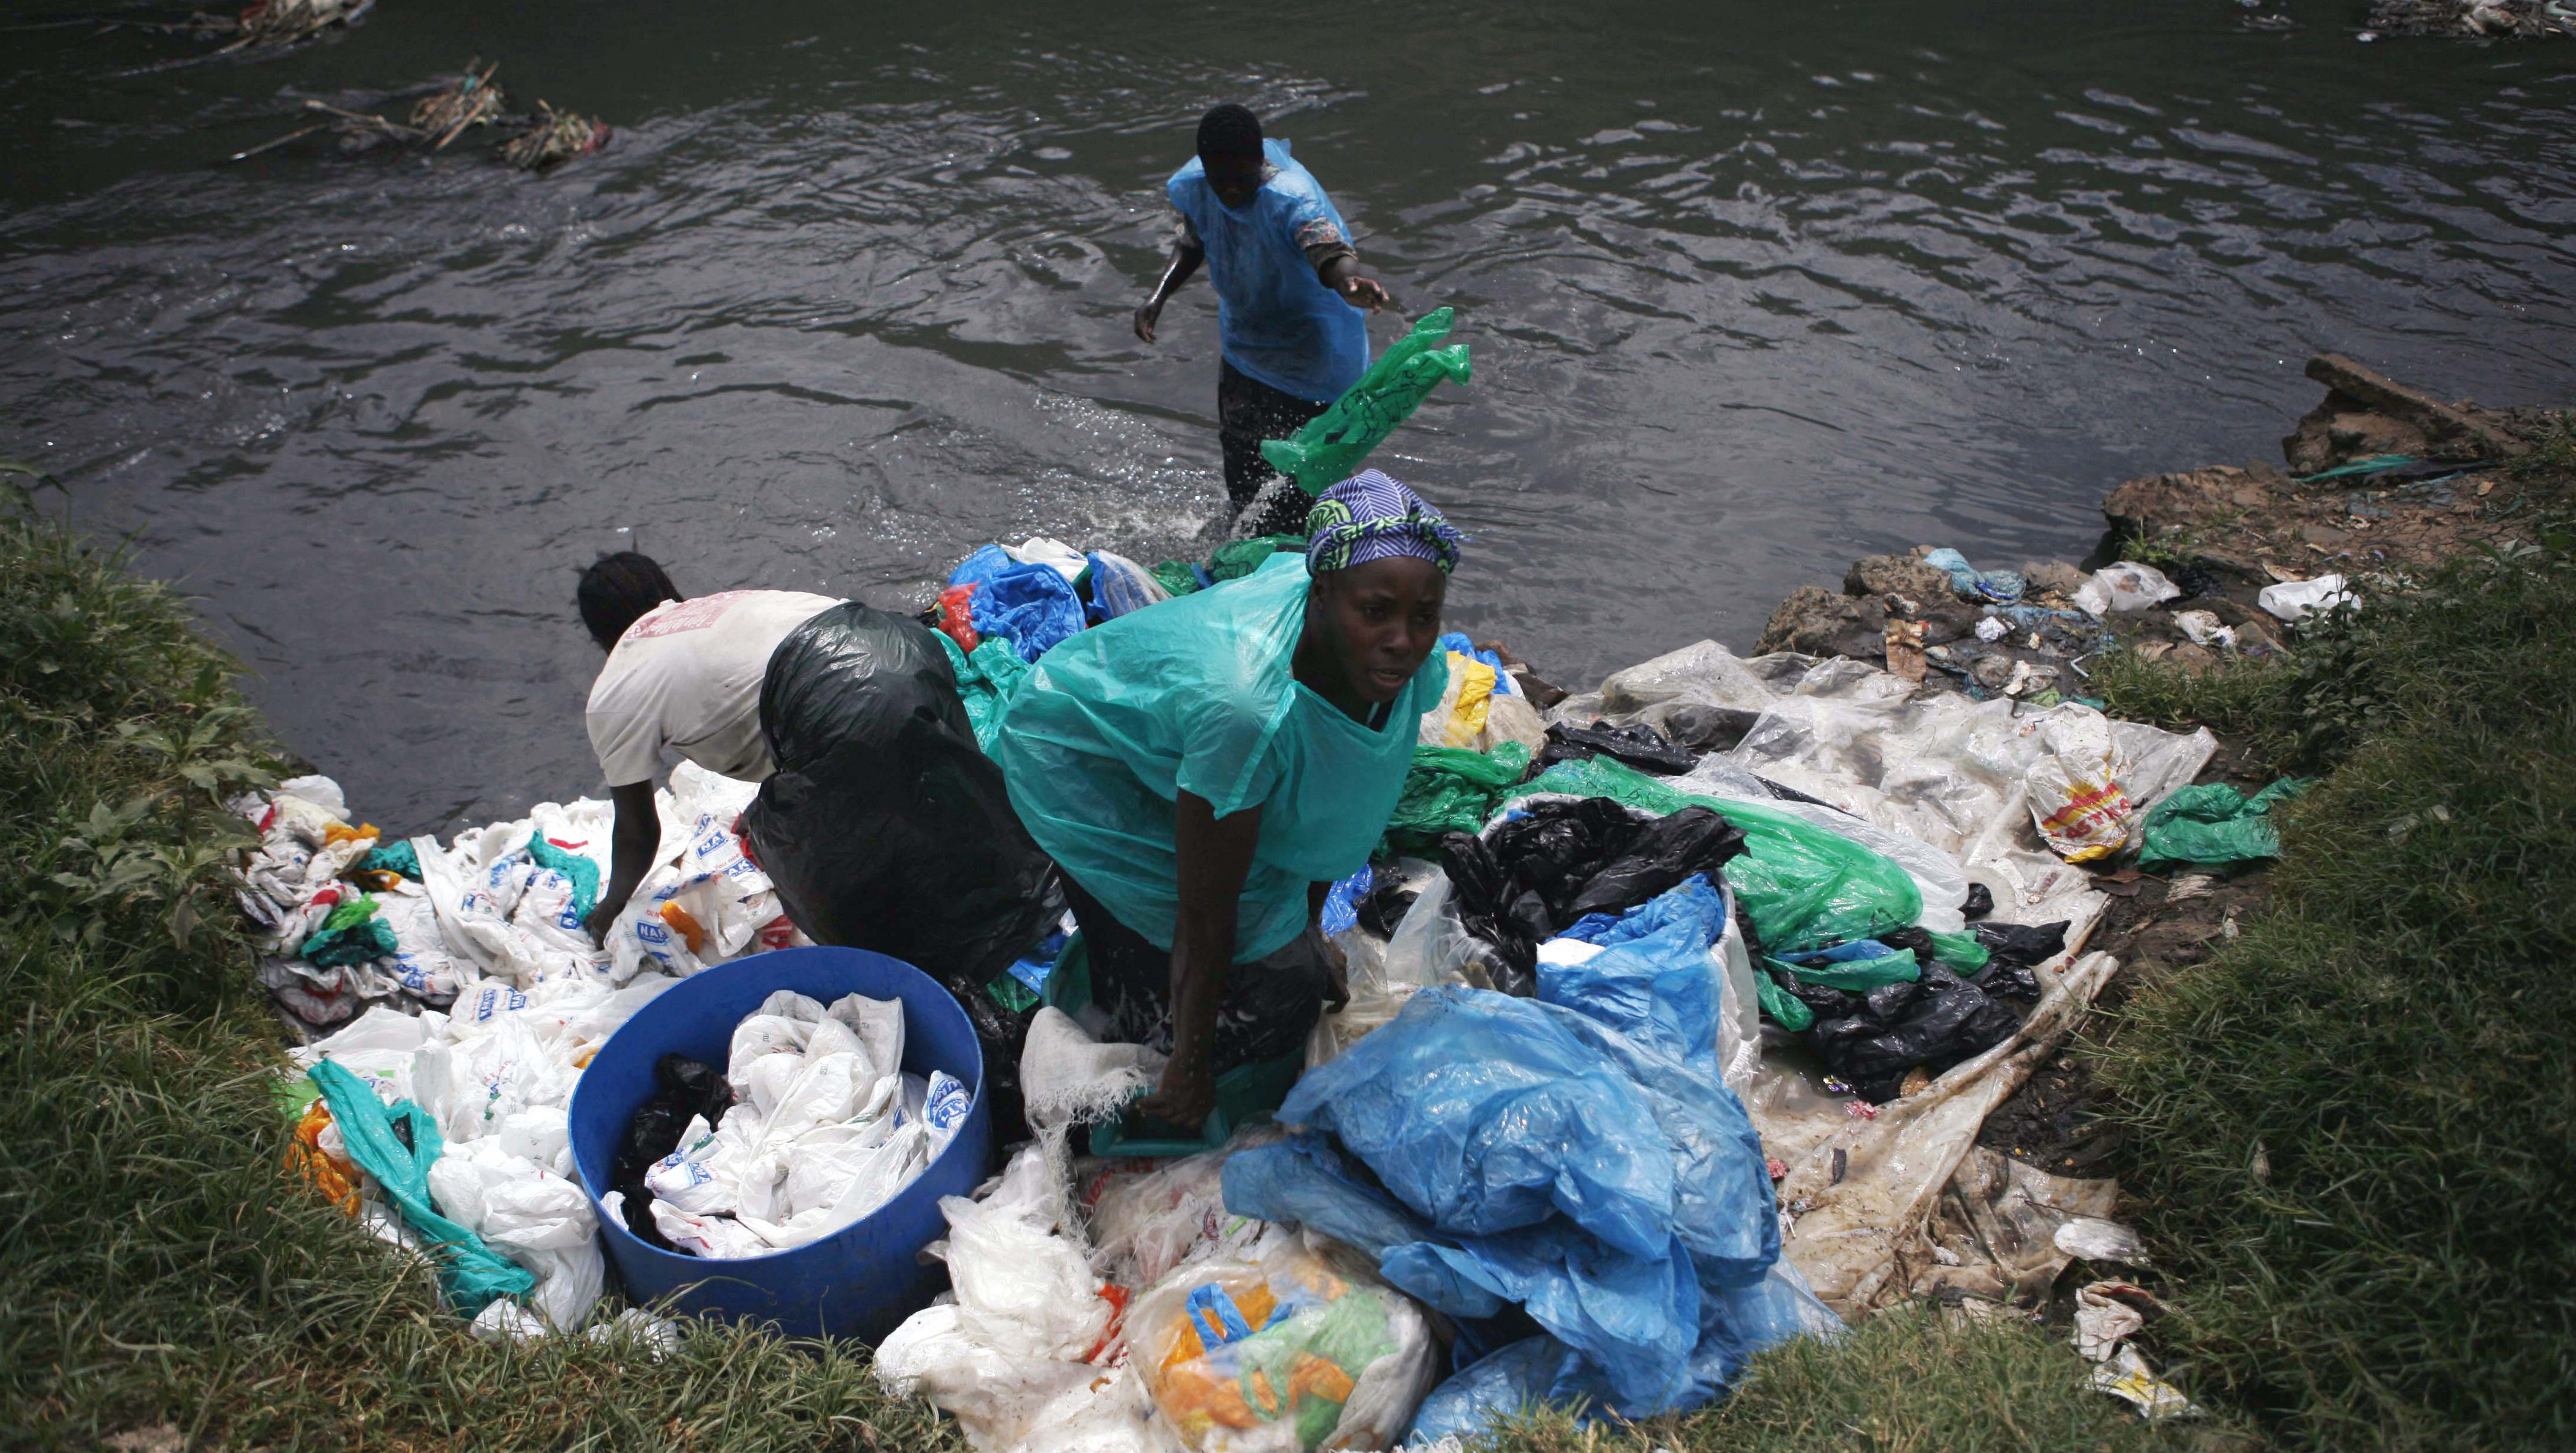 Women wash garbage and plastic bags collected from Dandora rubbish dump in Nairobi